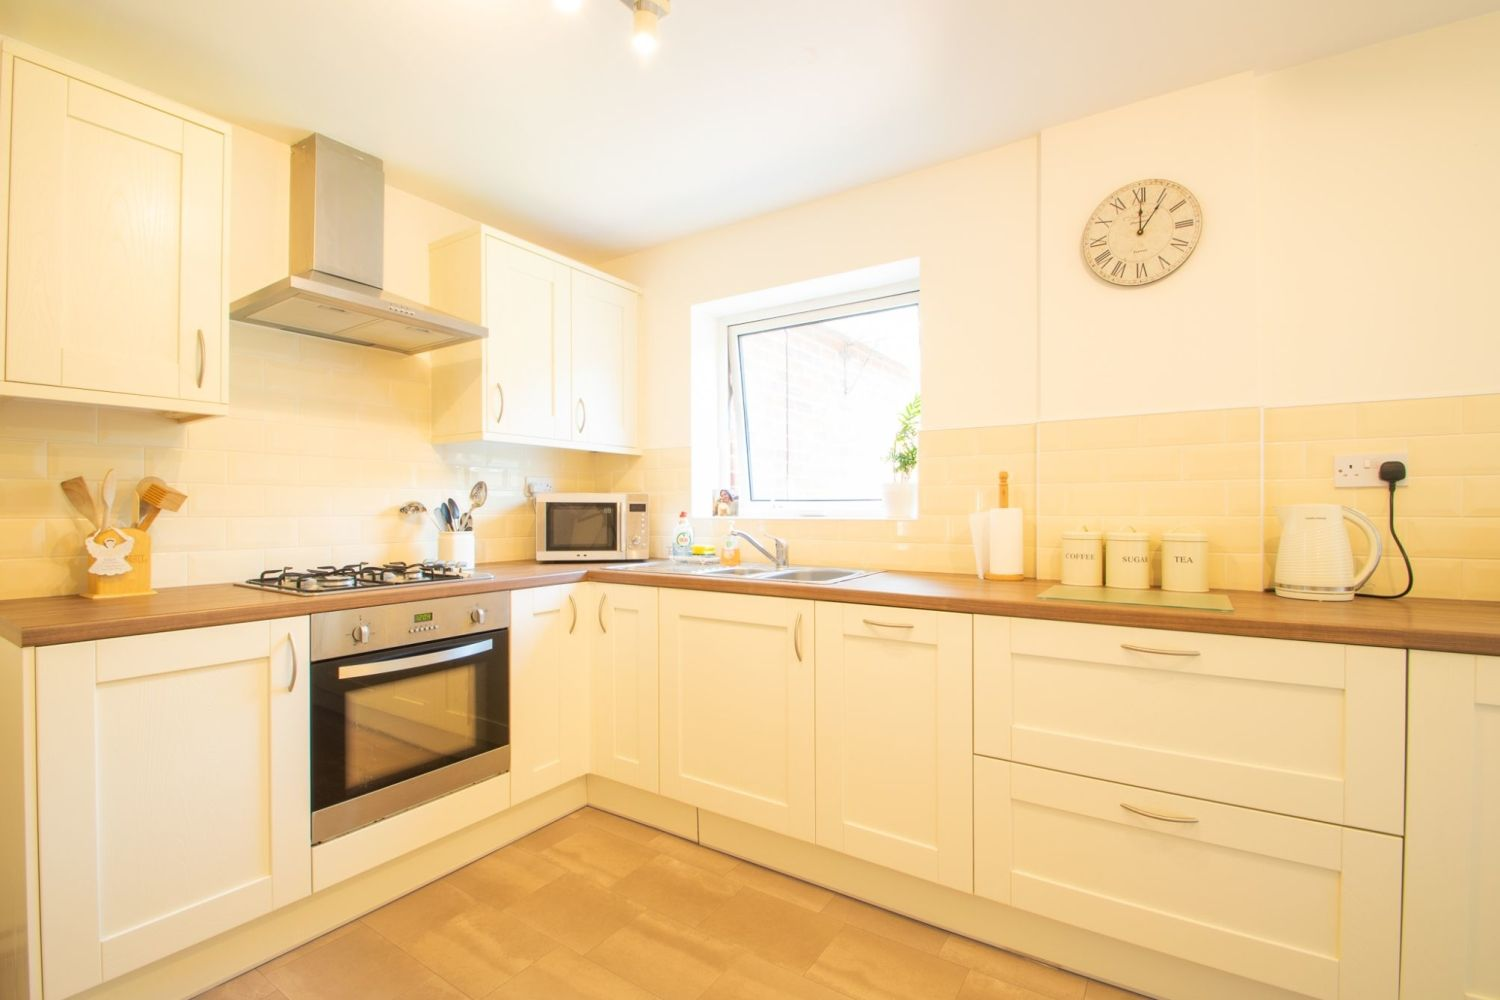 3 bed semi-detached for sale in High Haden Crescent, Cradley Heath  - Property Image 8